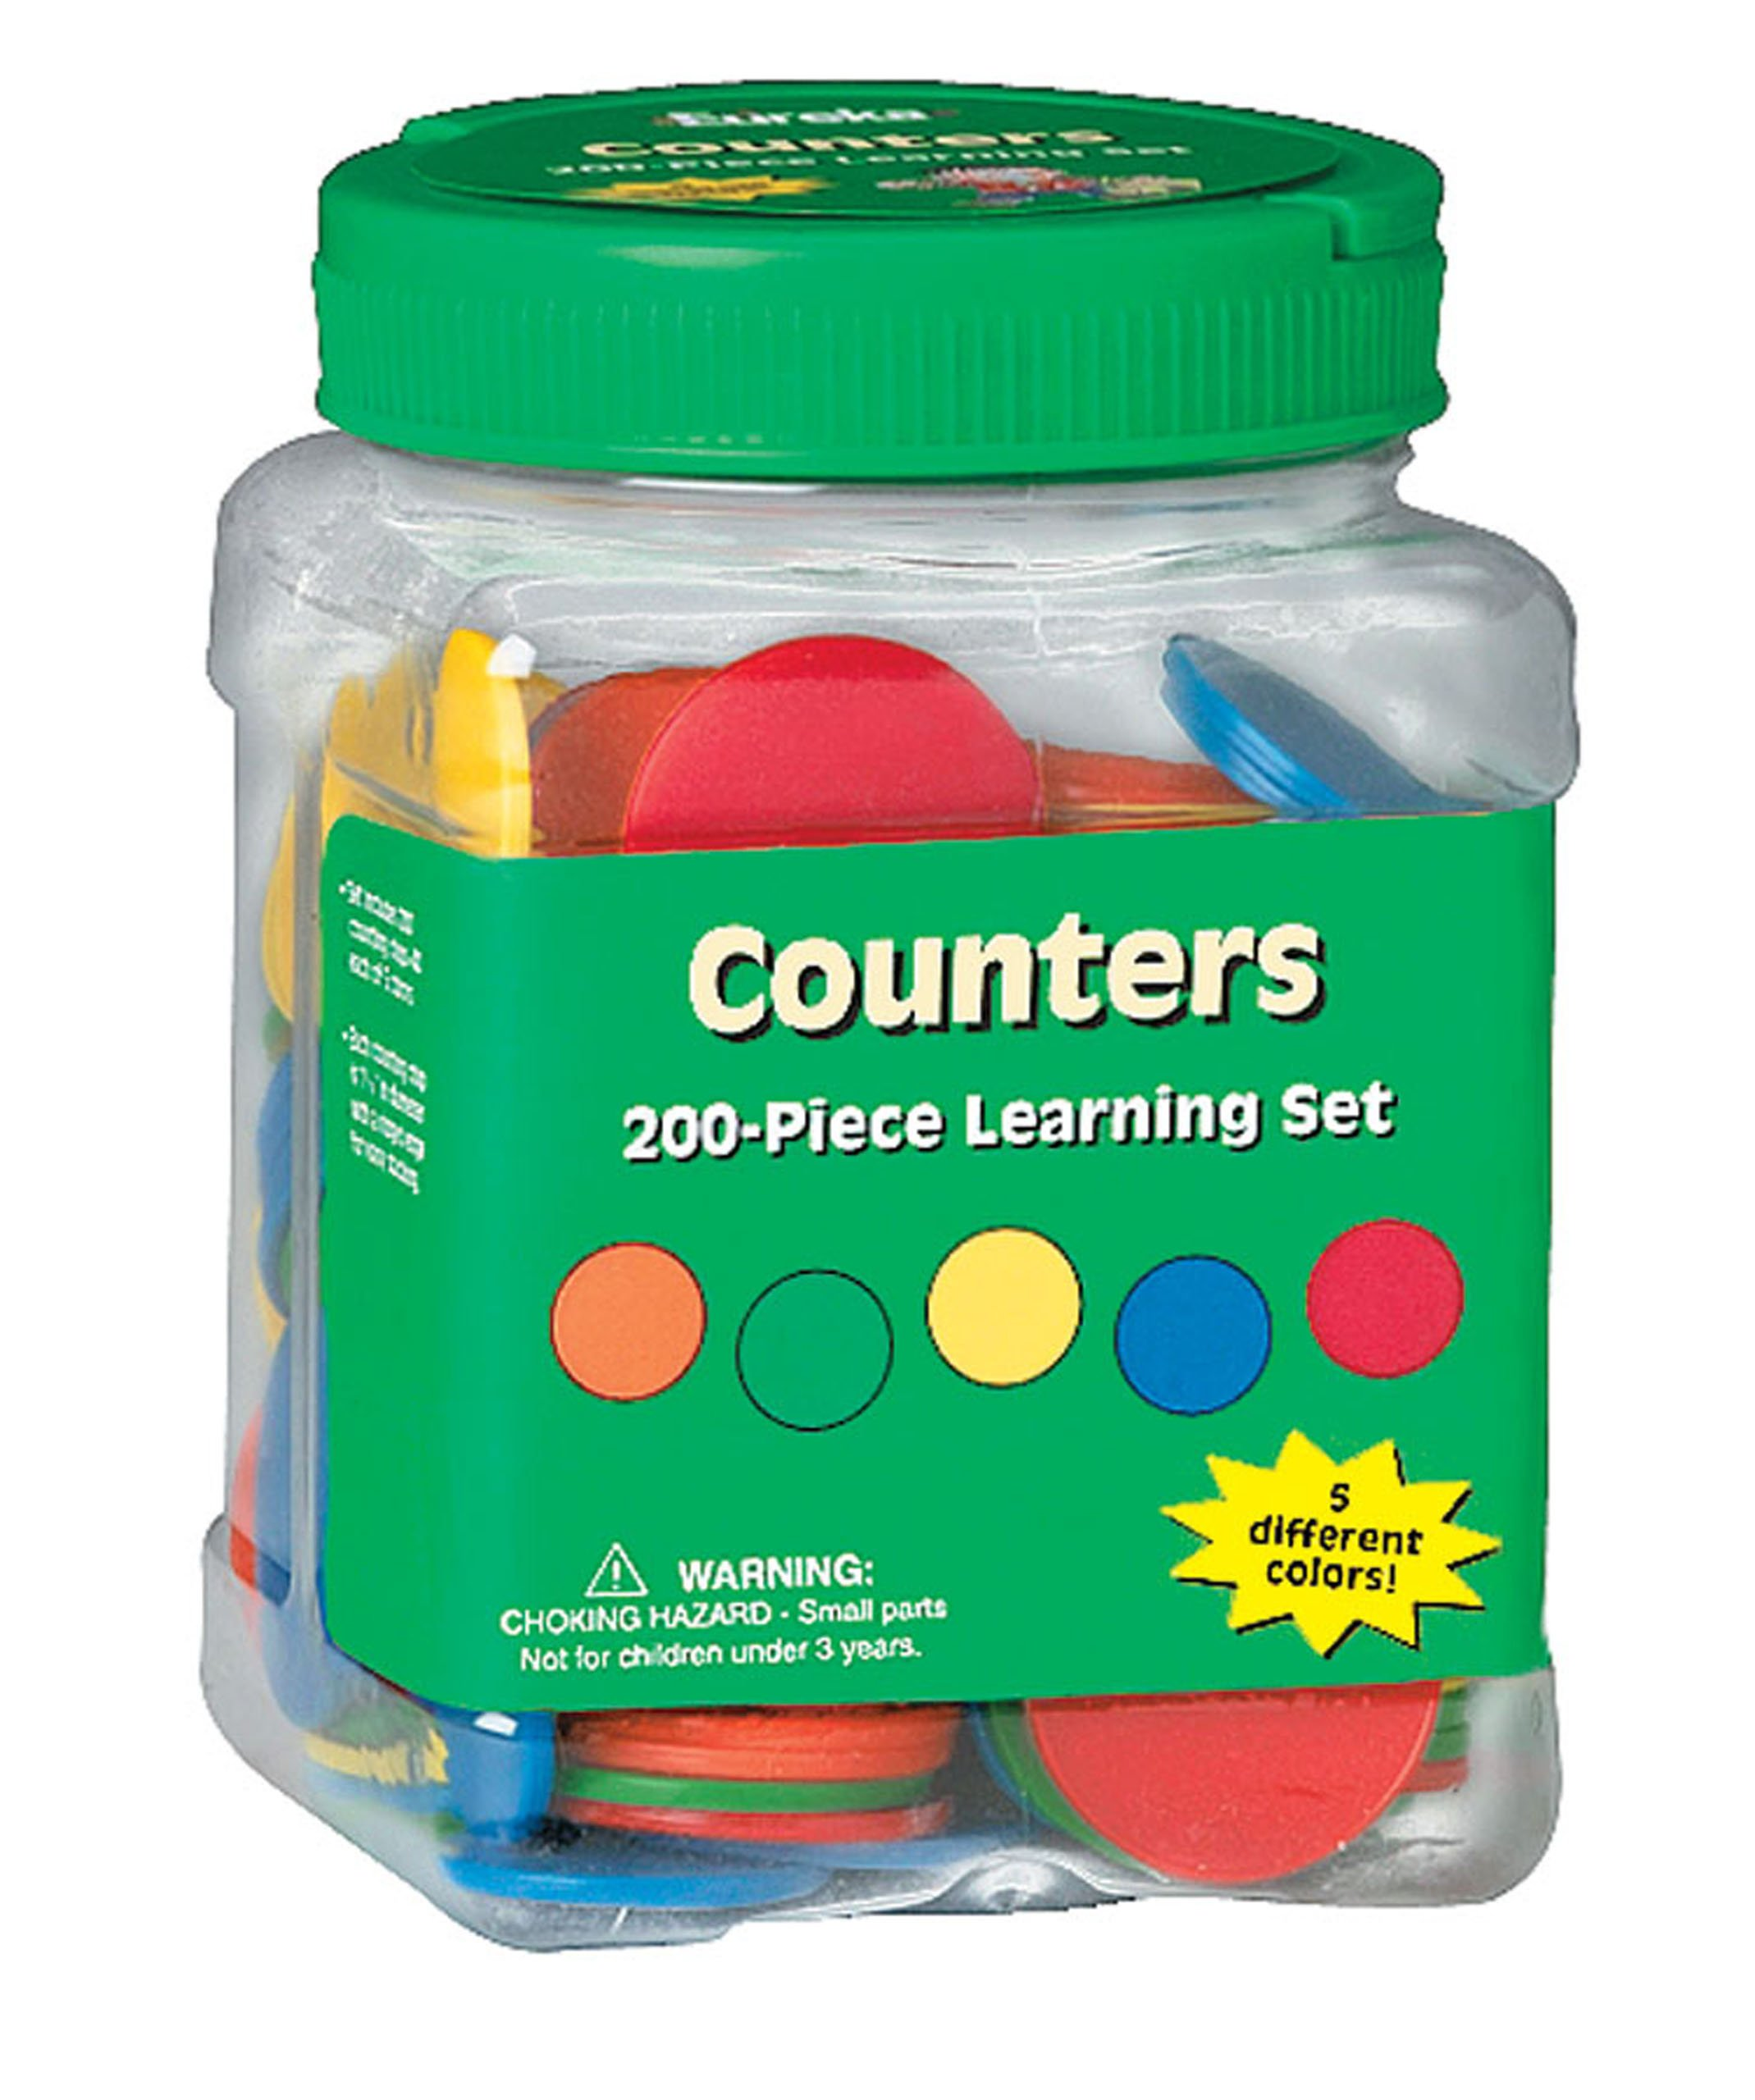 Eureka Tub Of Counters, 200 Counters in 3 3/4'' x 5 1/2'' x 3 3/4'' Tub